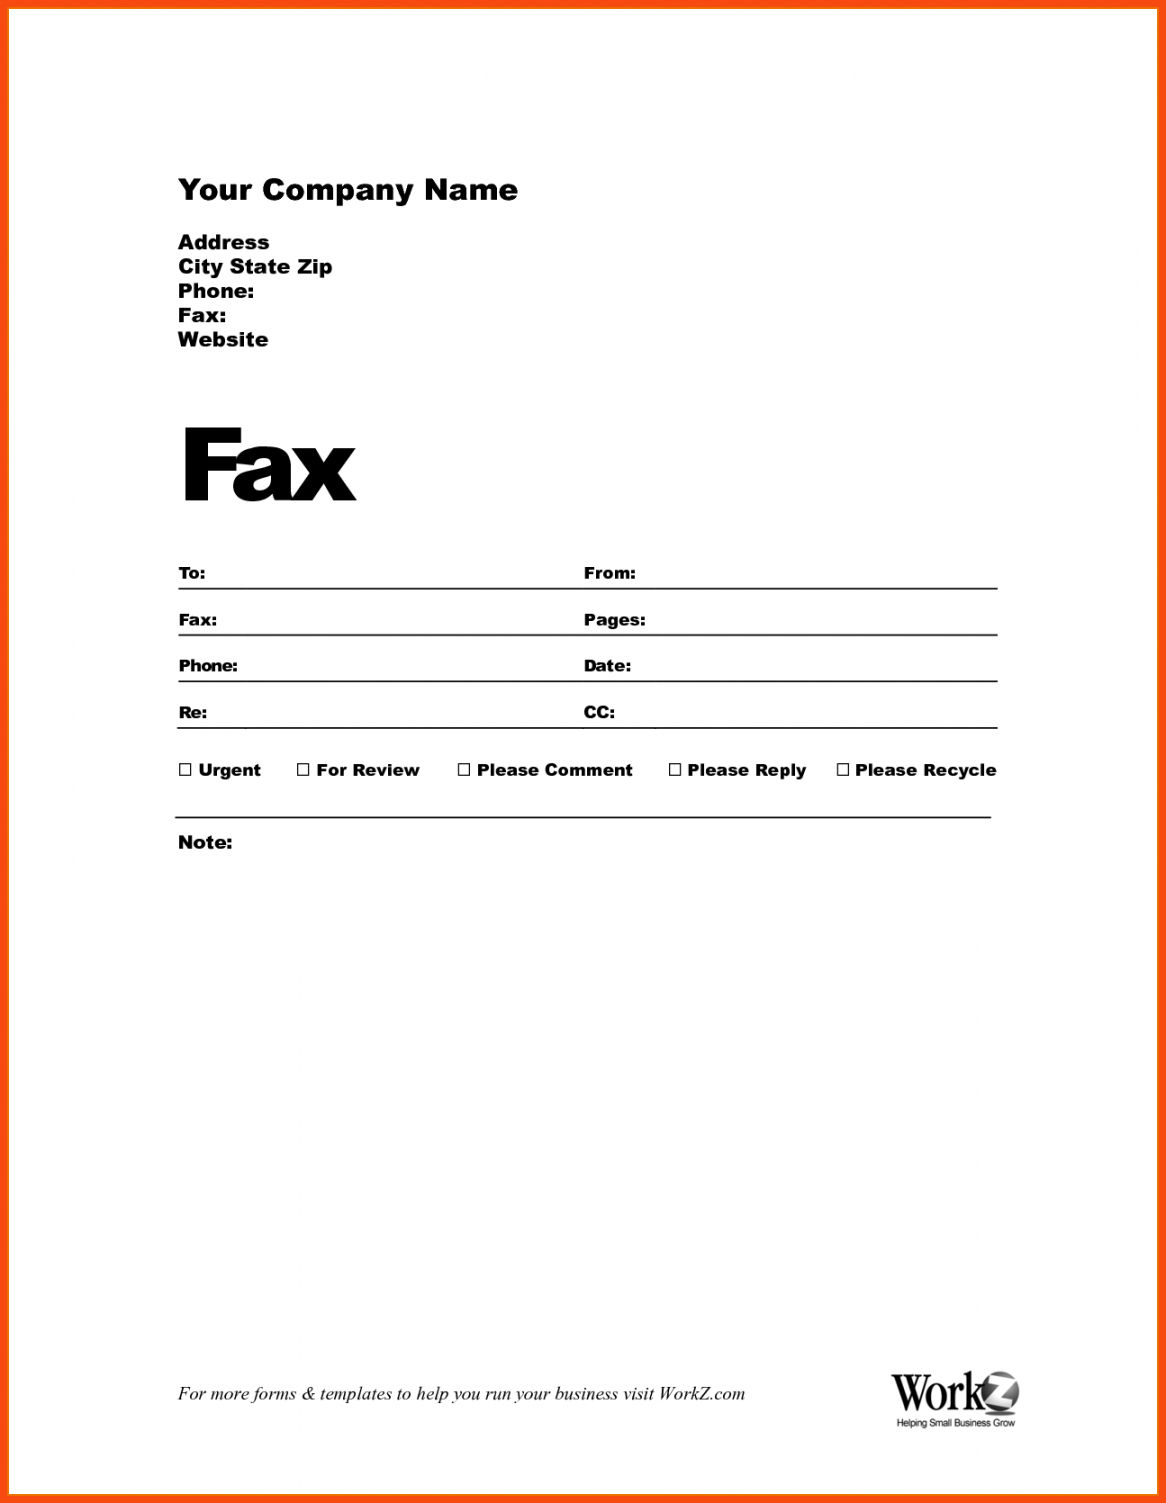 How To Fill Out A Fax Cover Sheet [Free]^^ Fax Cover Sheet Template - Free Printable Fax Cover Sheet